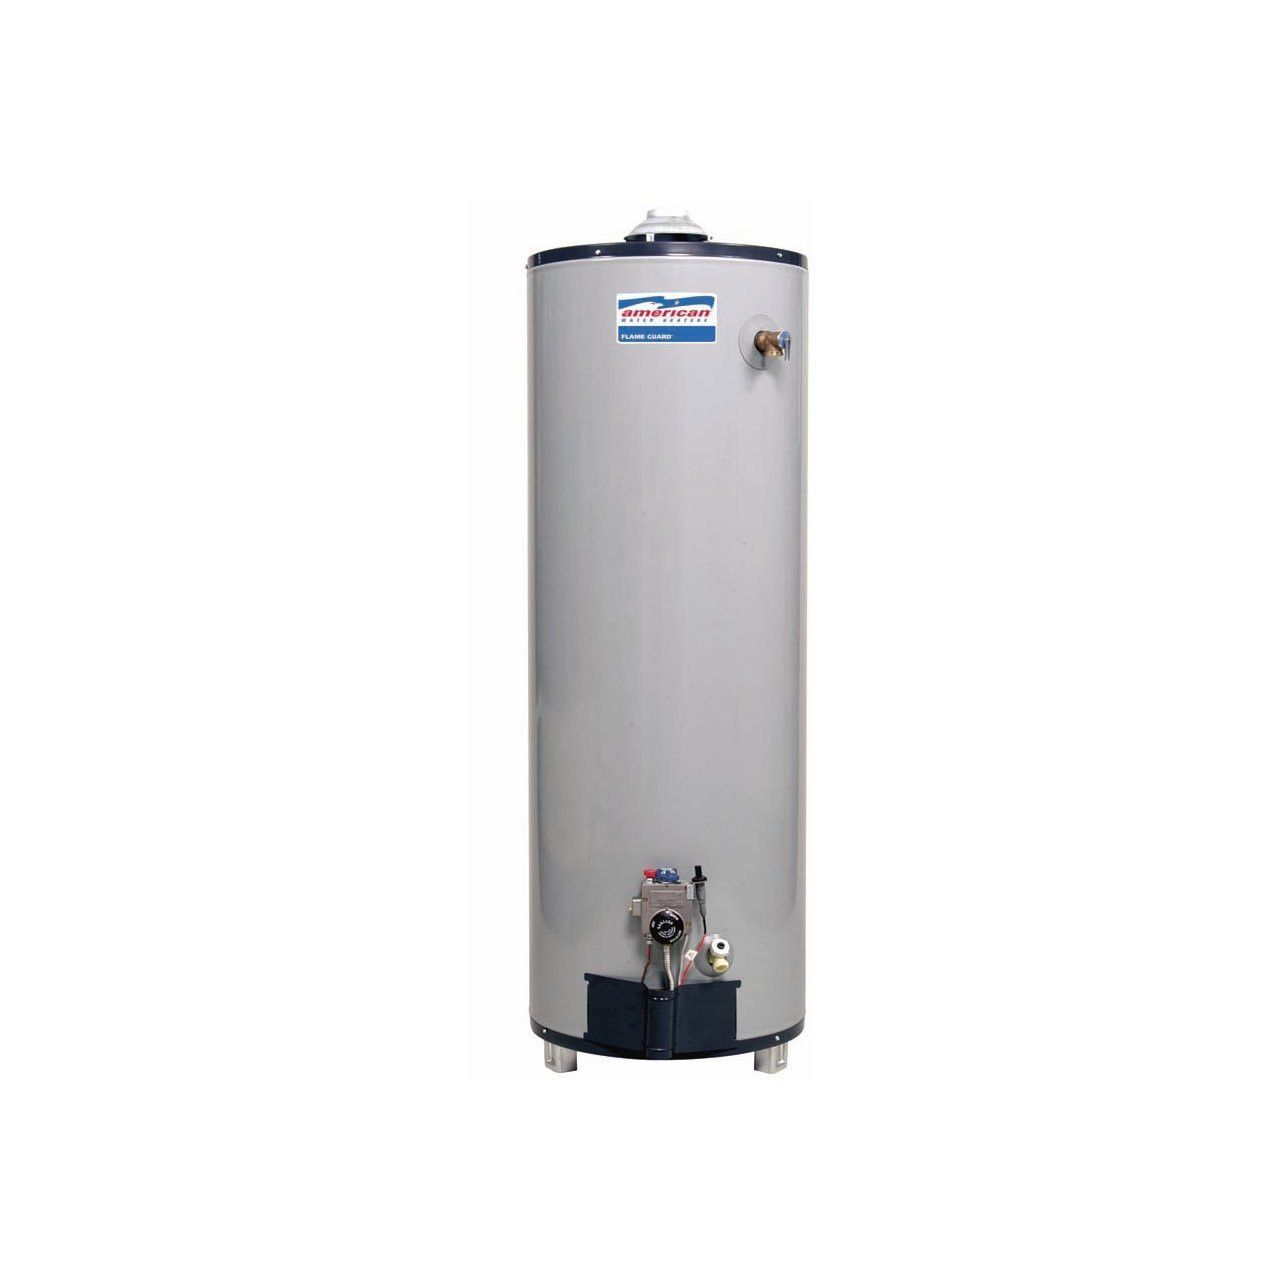 30 Gallon American Mobile Home Sealed Combustion Water Tank (Direct